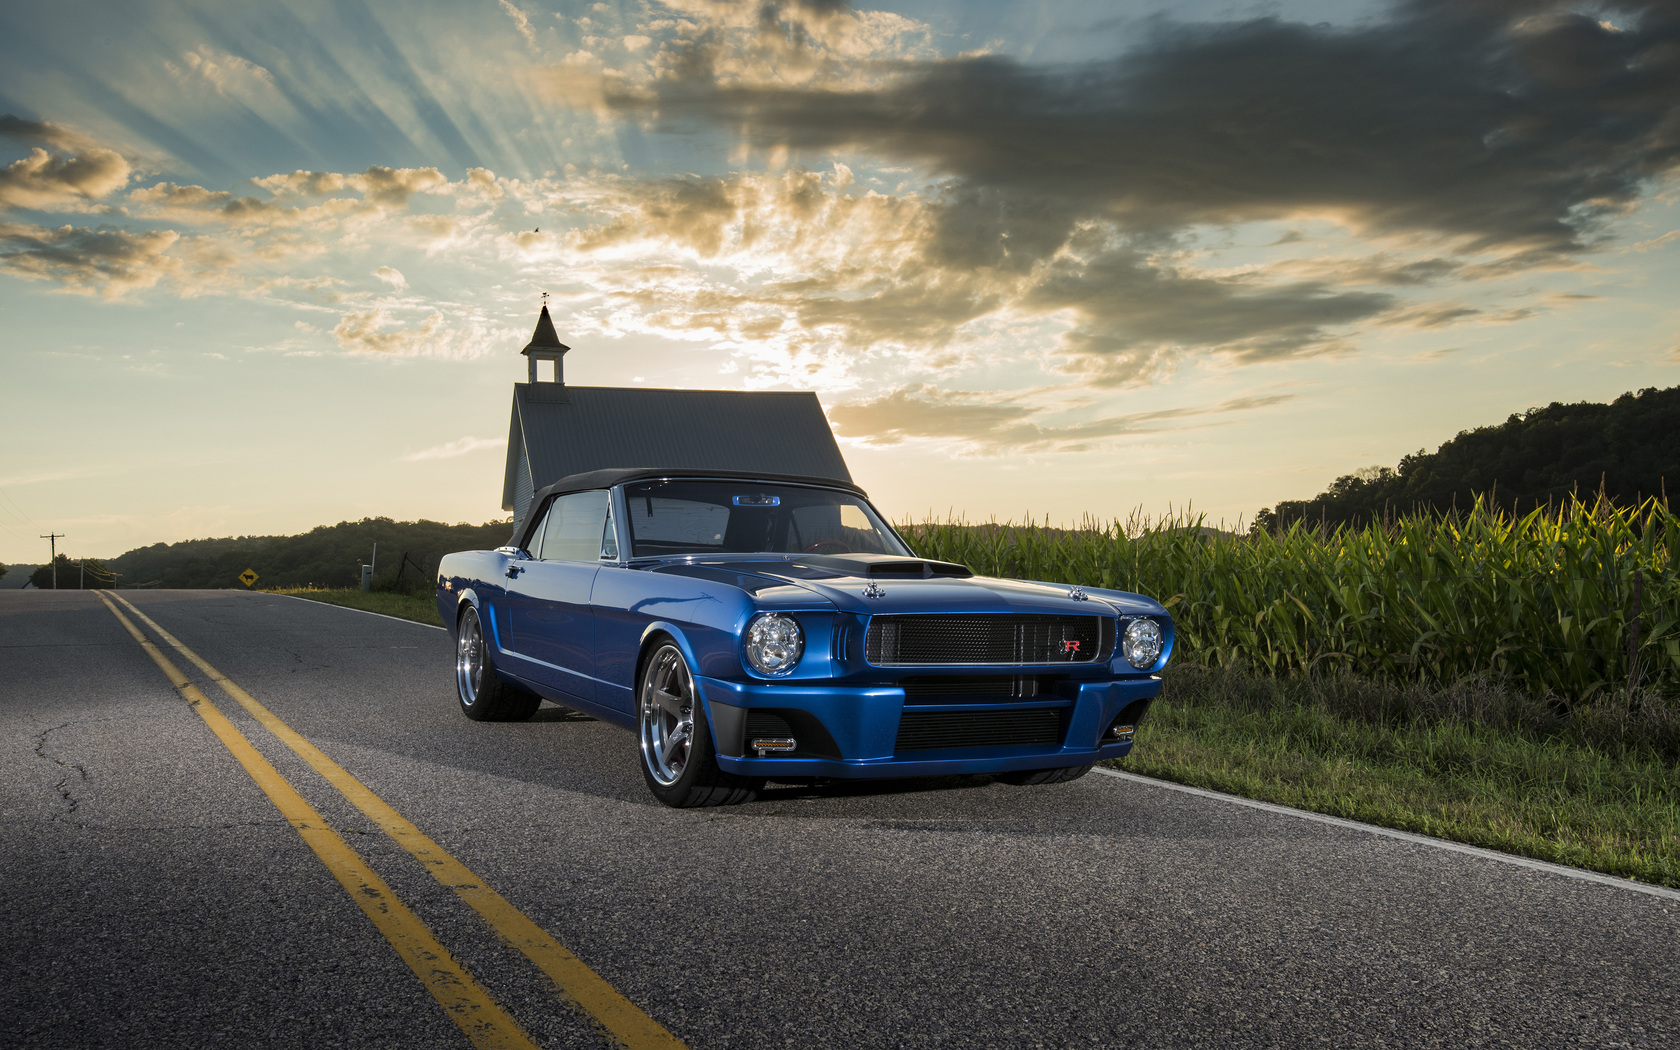 1965-ringbrothers-ford-mustang-convertible-ballistic-4k-yl.jpg